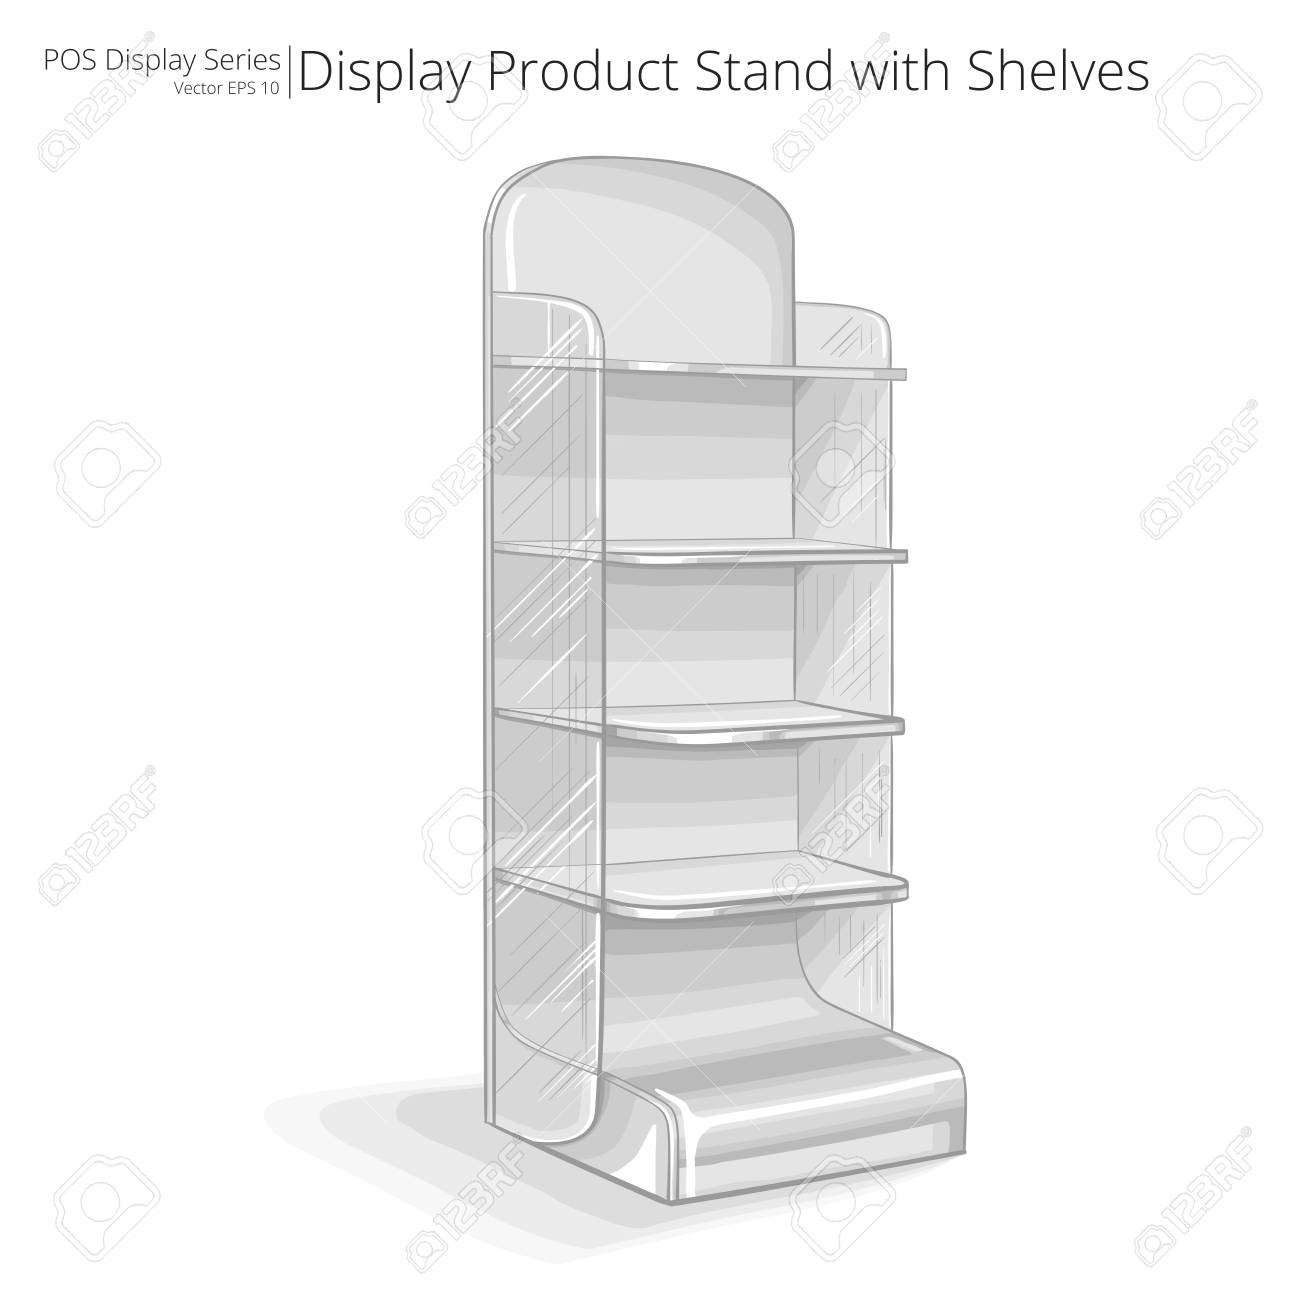 Product Stand With Shelves Vector, Illustration Of A Product